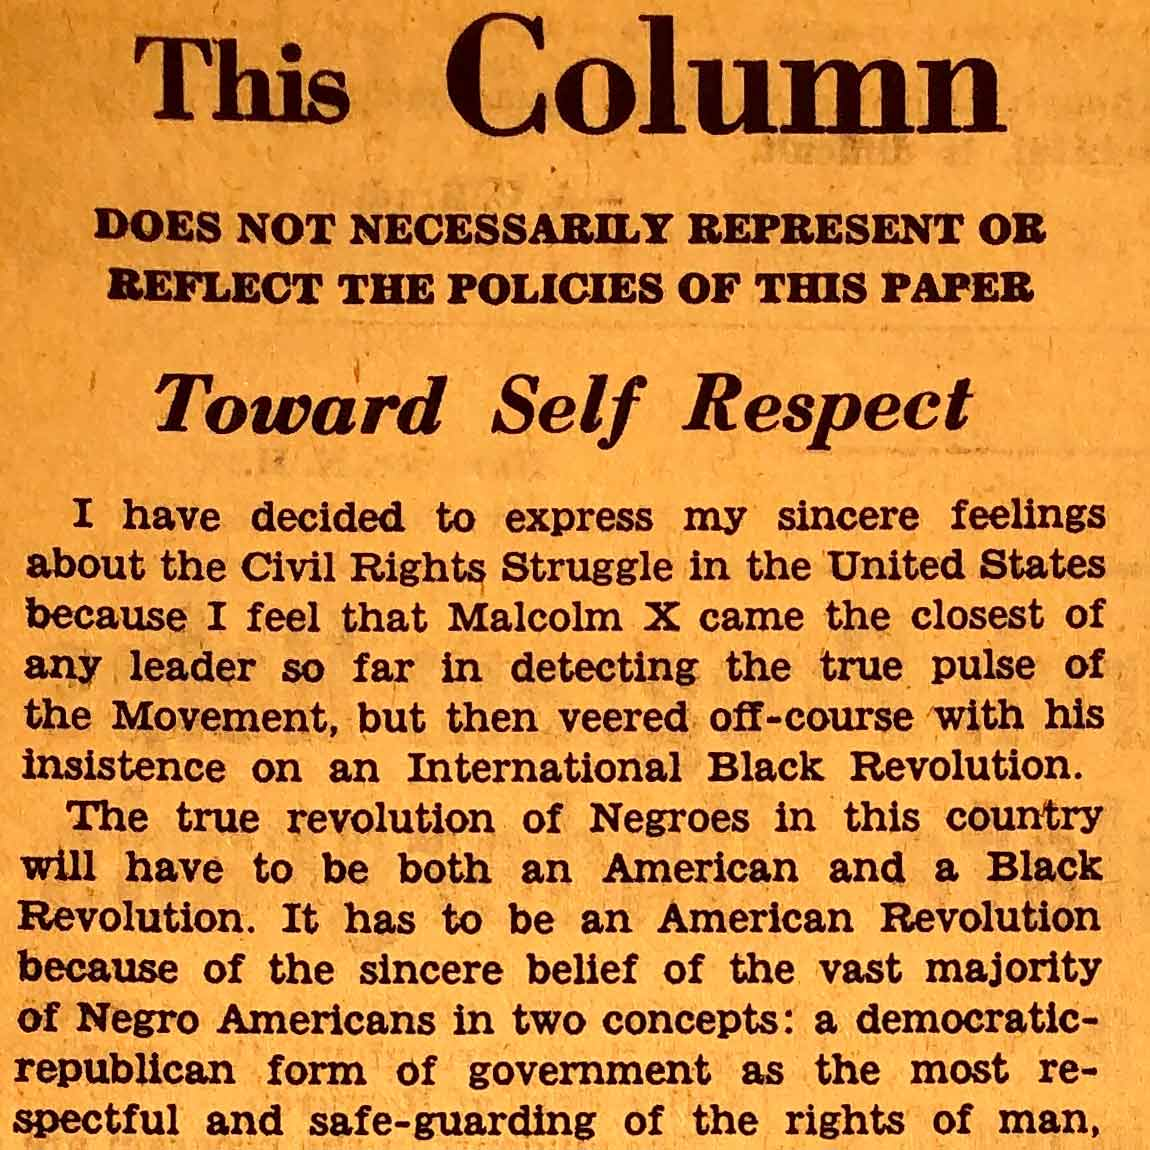 """Richard Joseph '65 posits that the """"true revolution"""" of Black Americans must be an American revolution and a Black revolution. He asserts that the first step of this true revolution is for Black Americans to be """"self-respecting"""" and proud of their heritage. The second step of this revolution is for American society to foster participation from all its members regardless of race."""